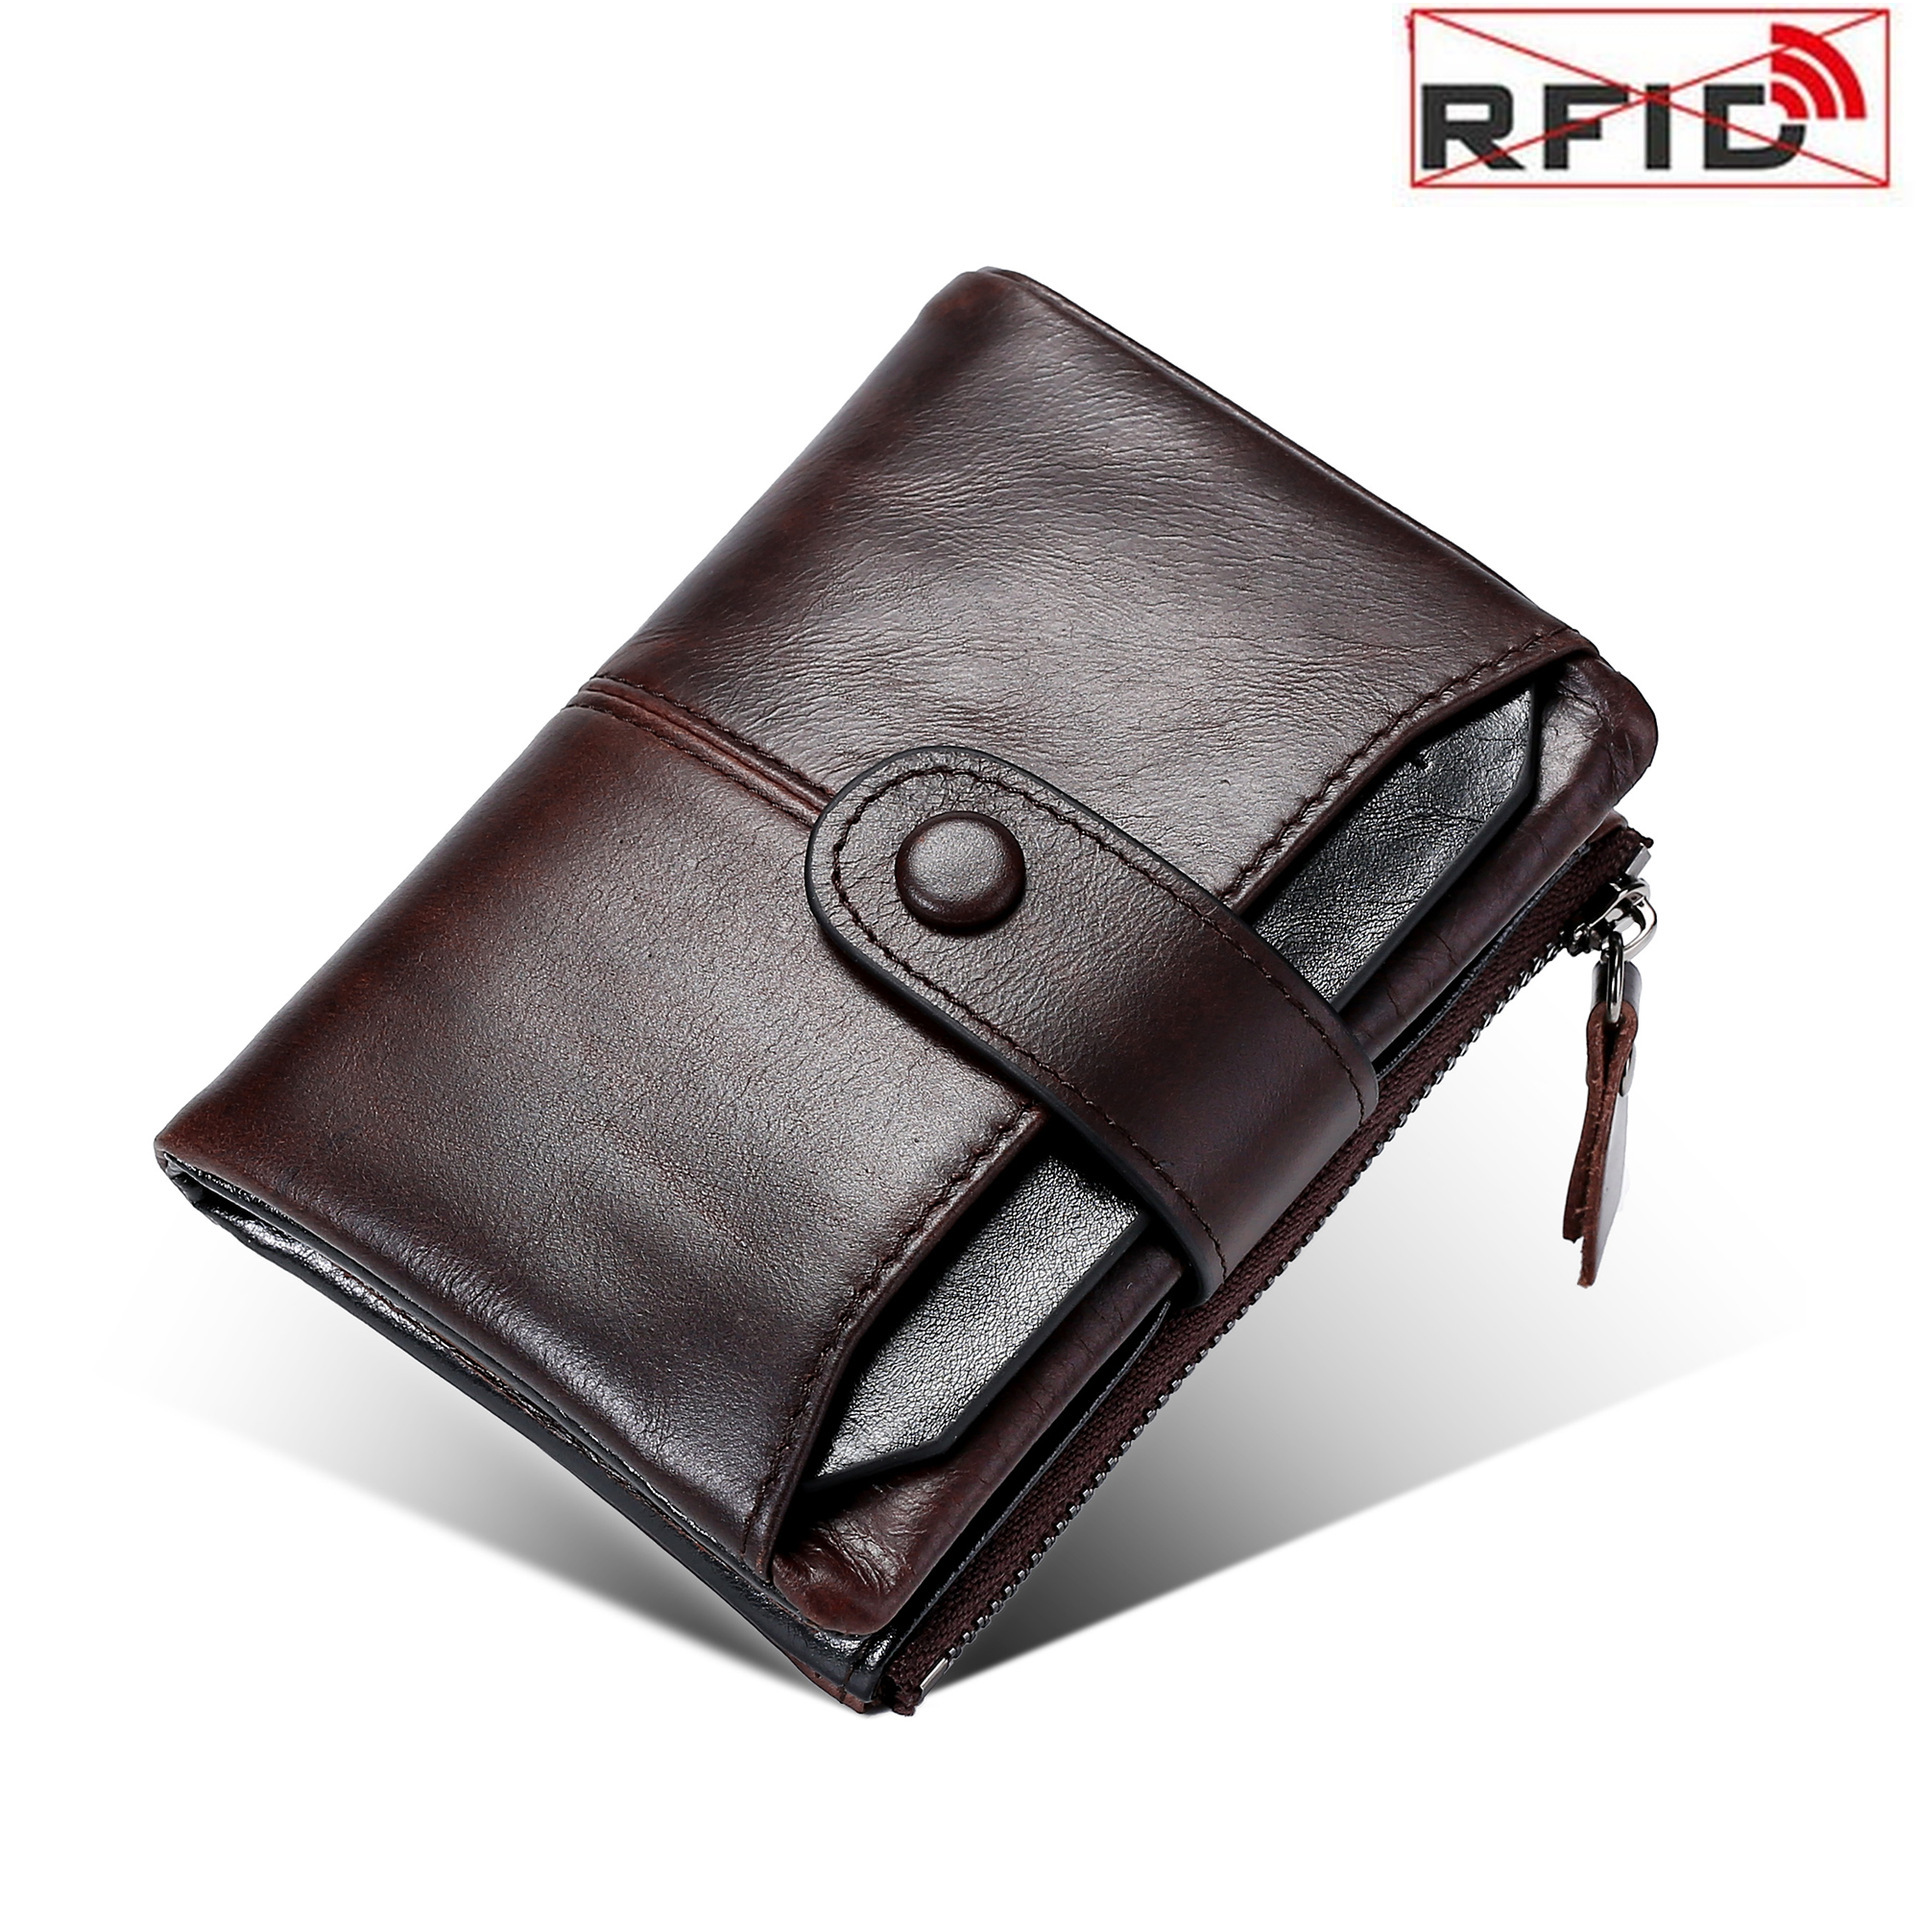 New Men's Wallet Coin Purse Card Holder Anti Theft Brush Rfid Money Bag Luxury Oil Wax Vintage Genuine Leather Wallet Purses